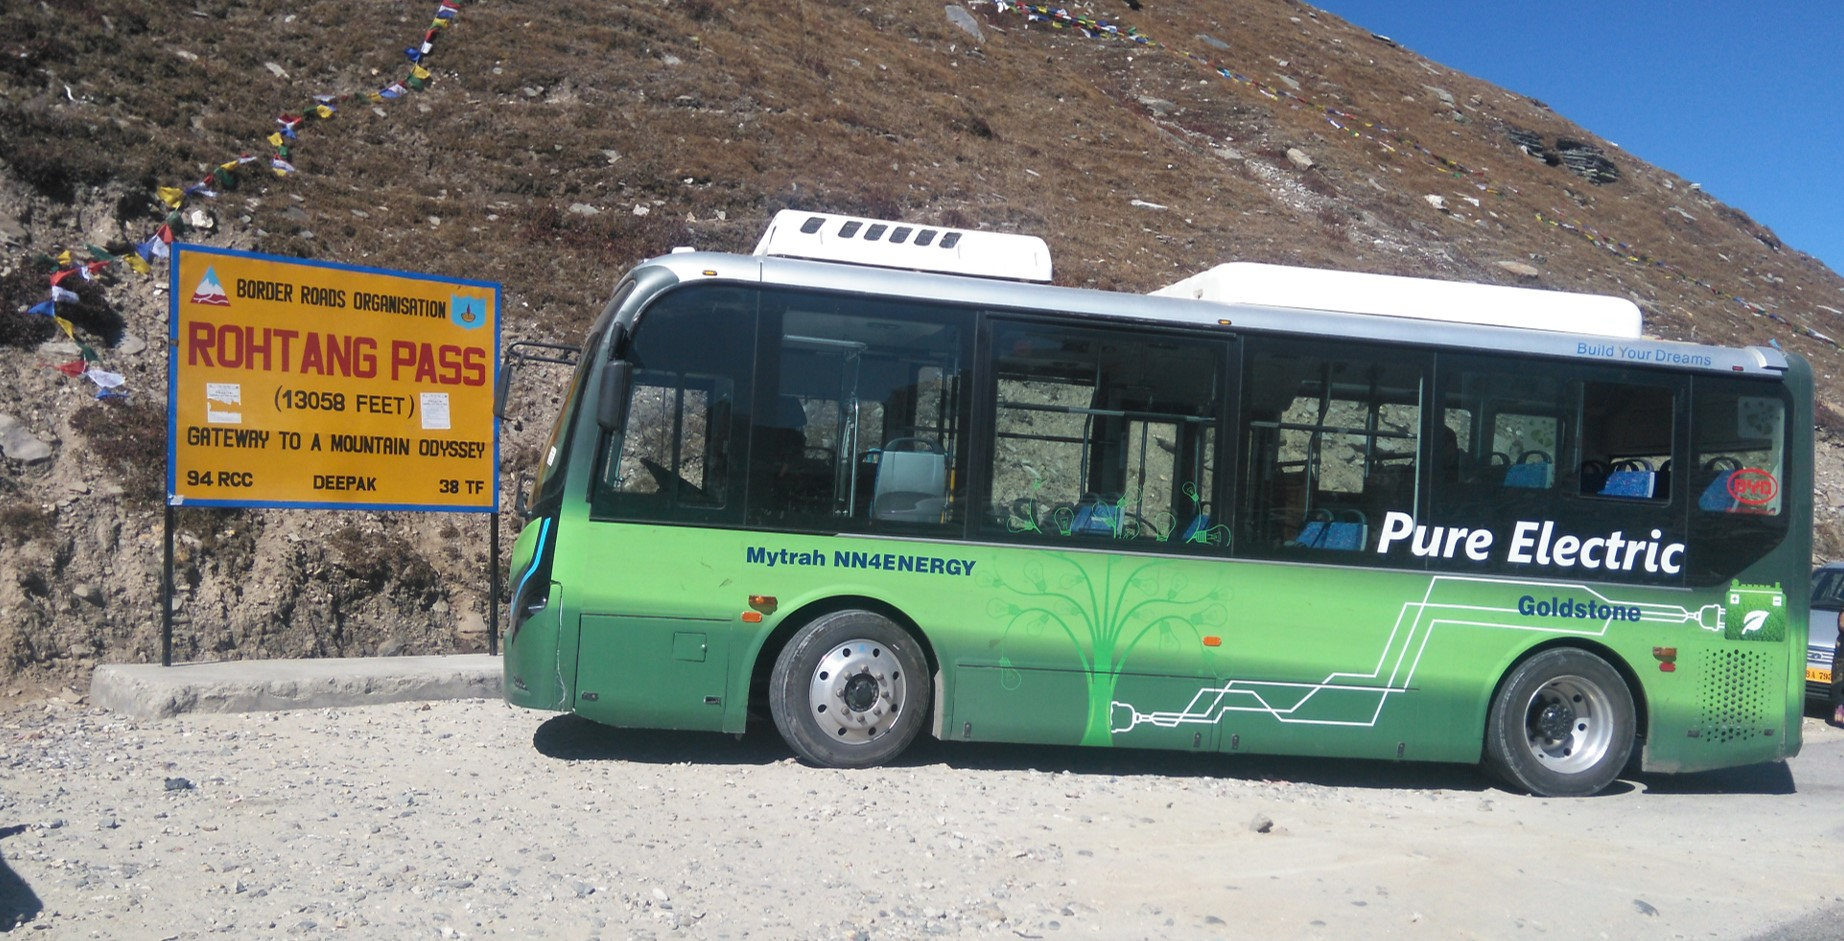 15. Electric bus on Rohtang road